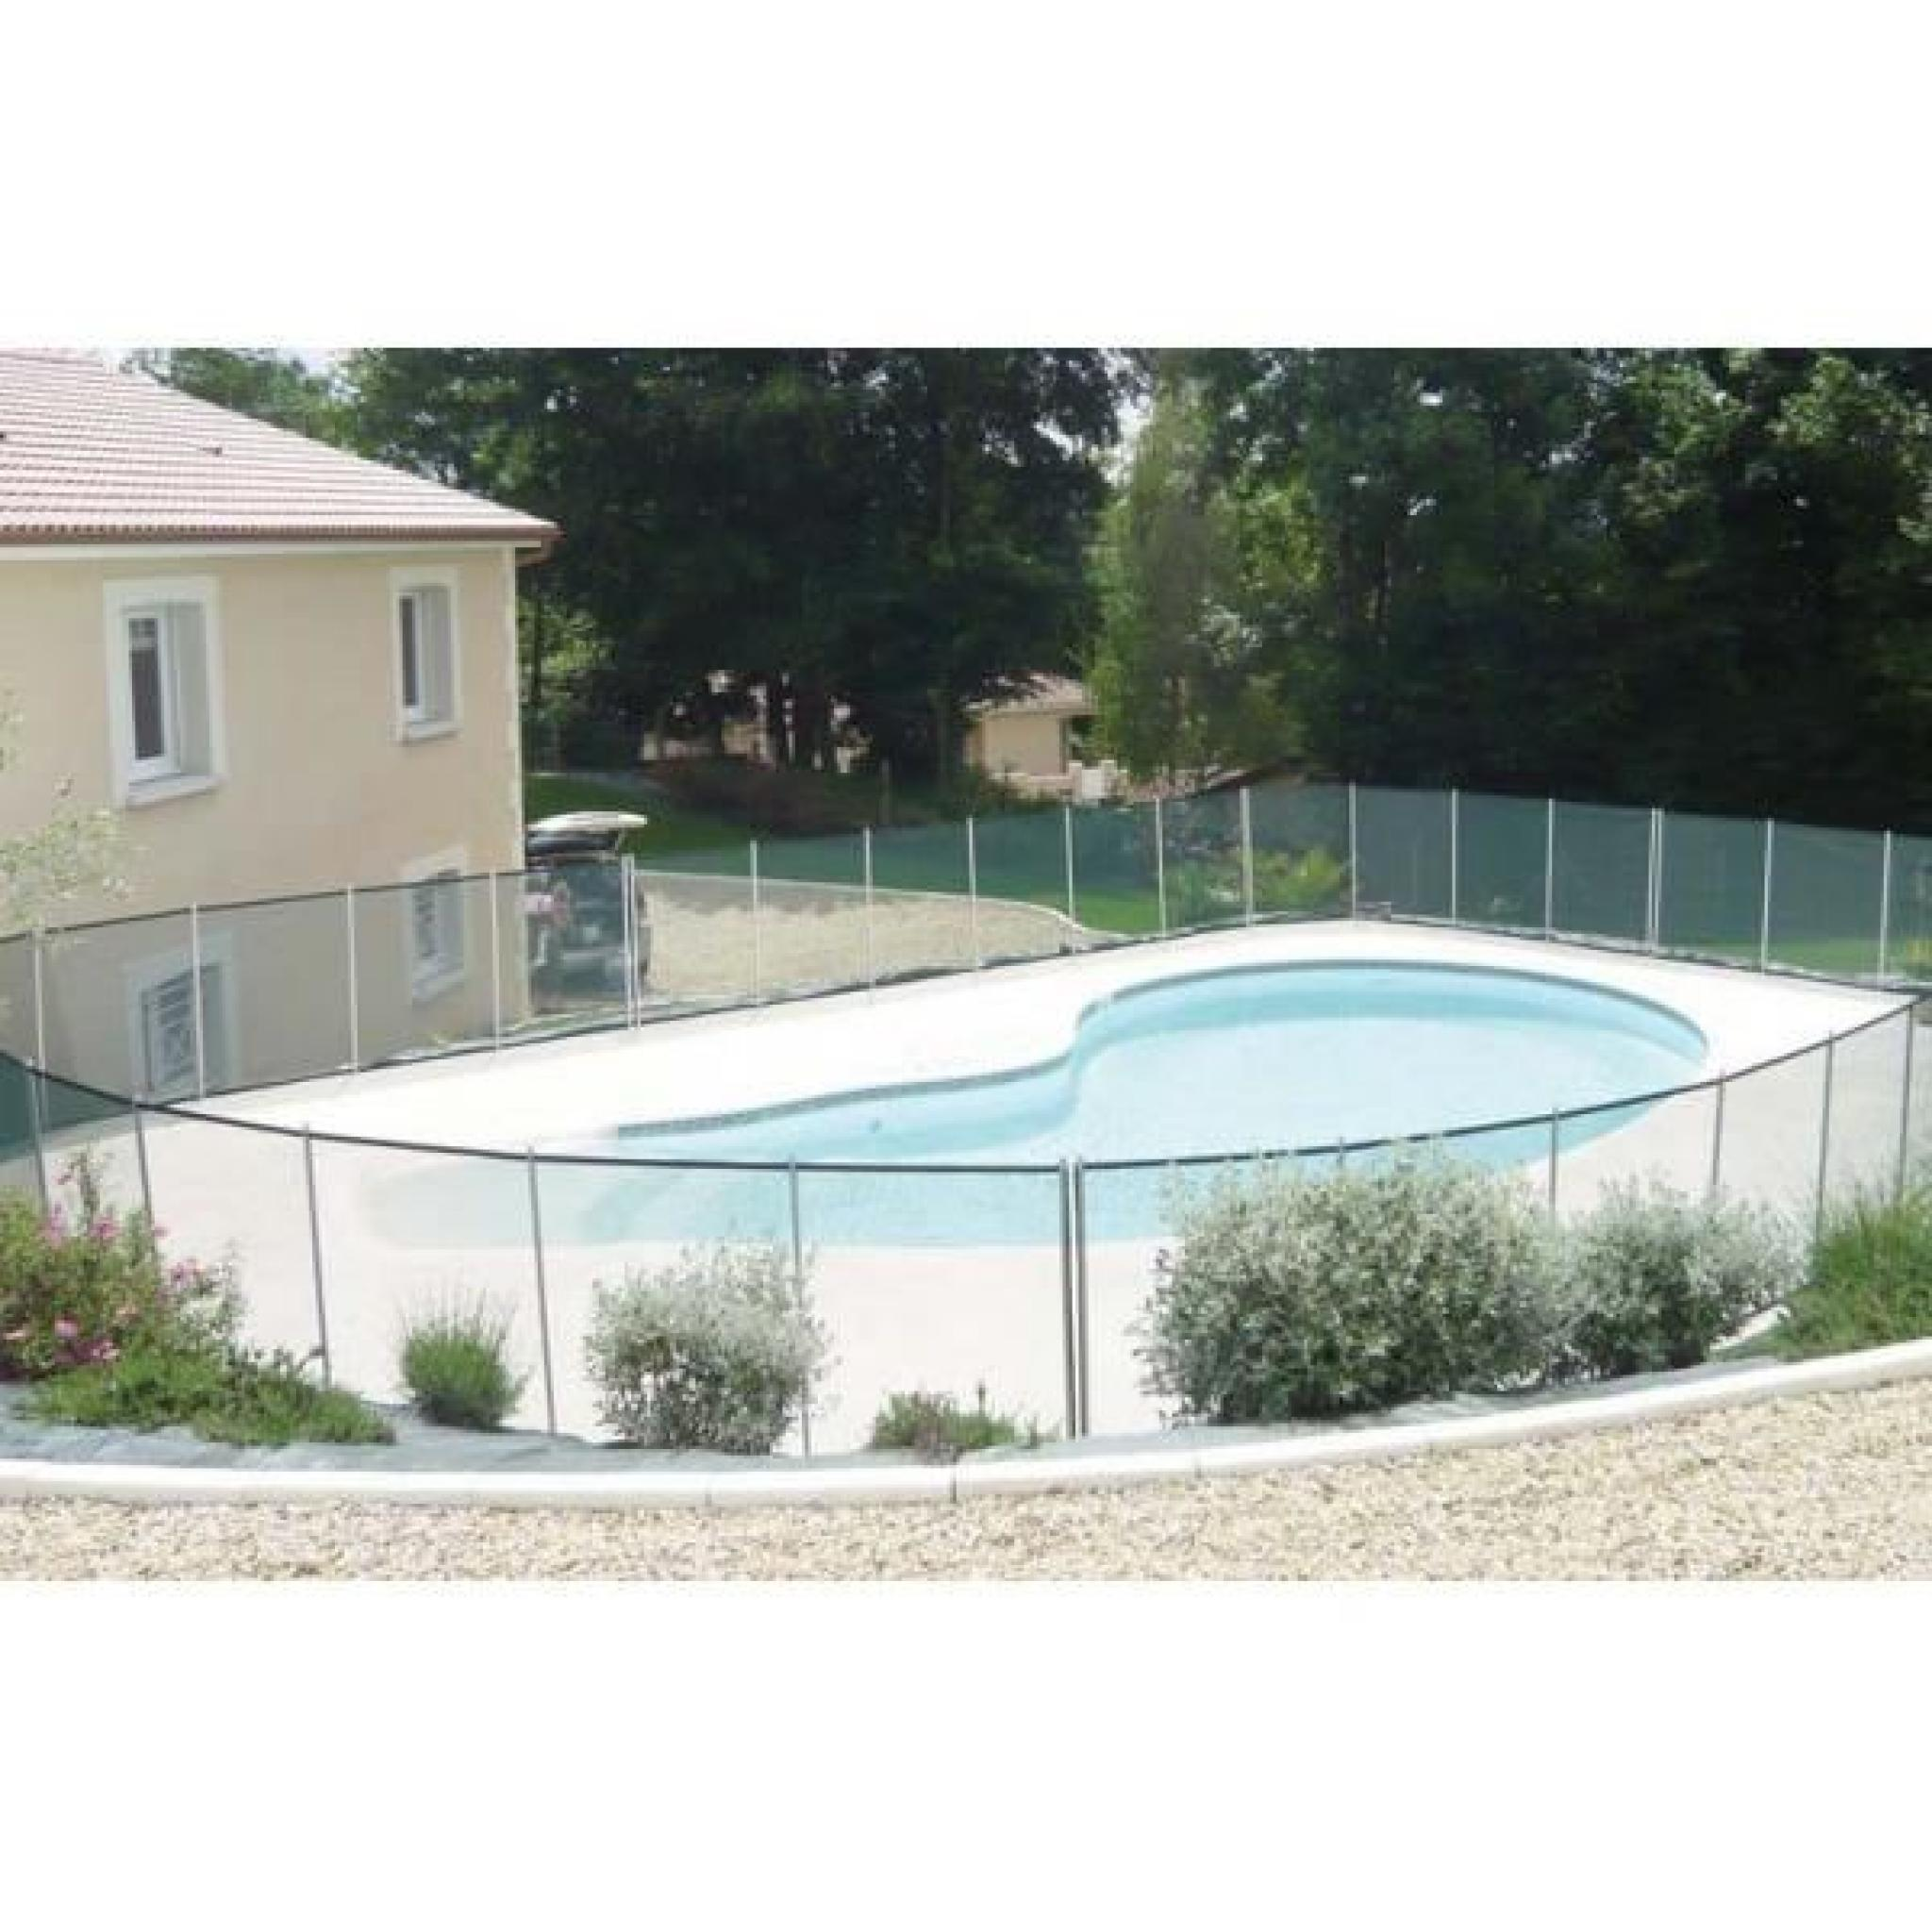 Barriere de piscine beethoven noire piquets noirs 8 for Barrieres piscine beethoven